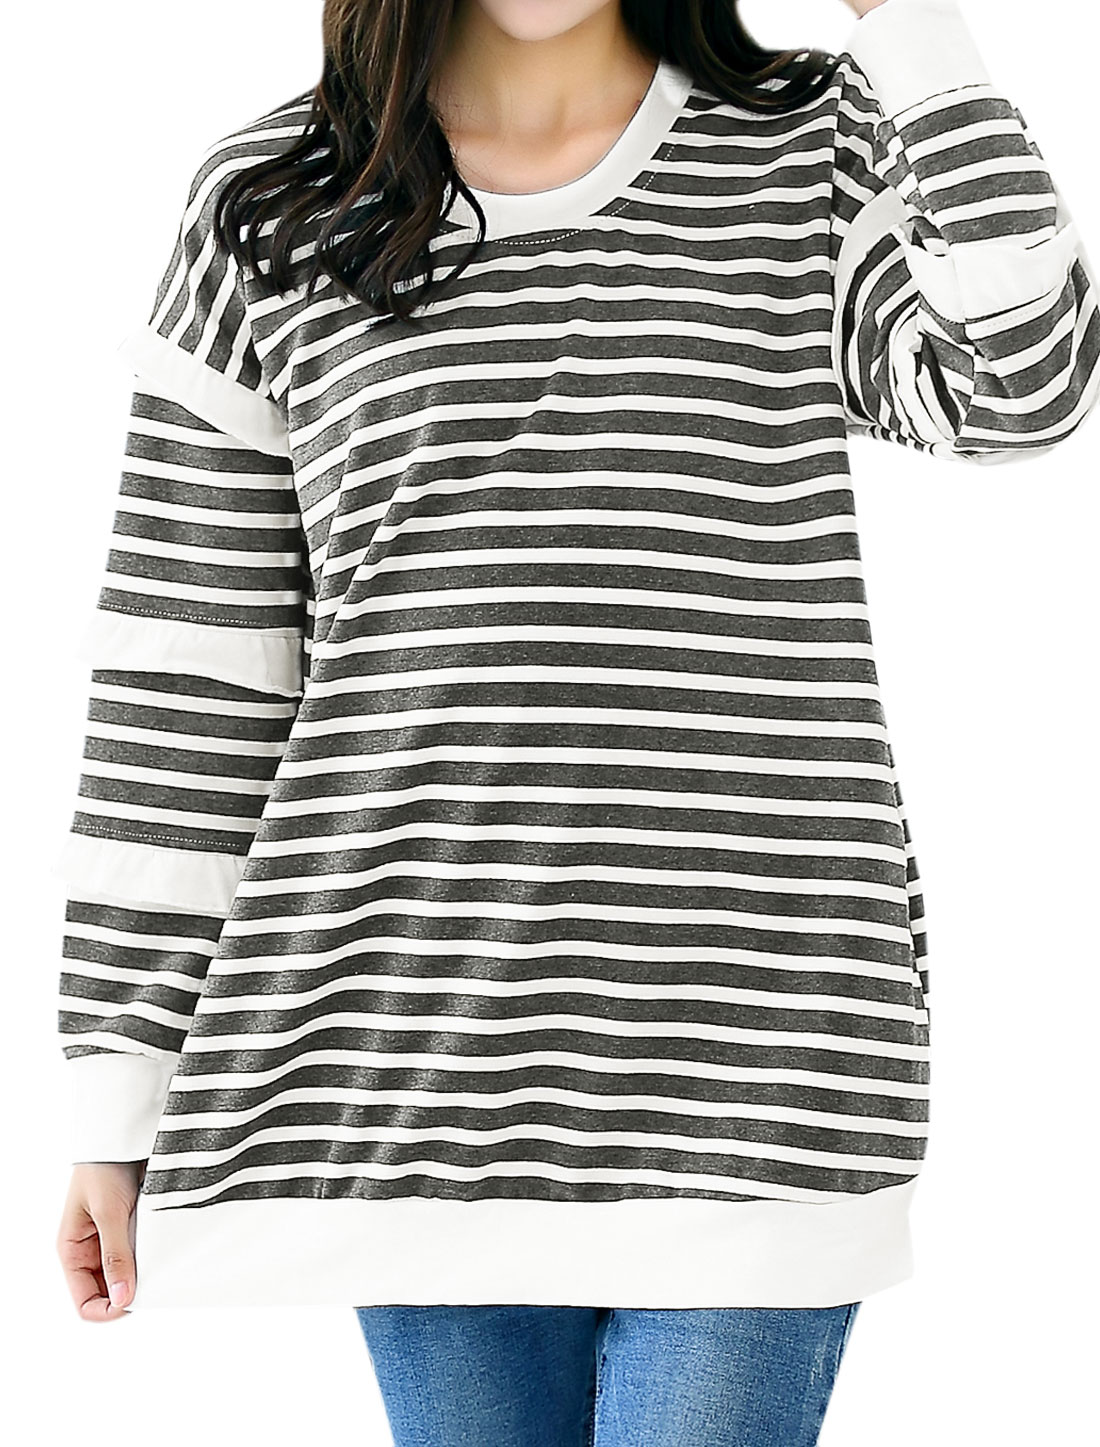 Pregnant Women Round Neck Long Sleeves Stripes Pattern Tunic Top Gray M